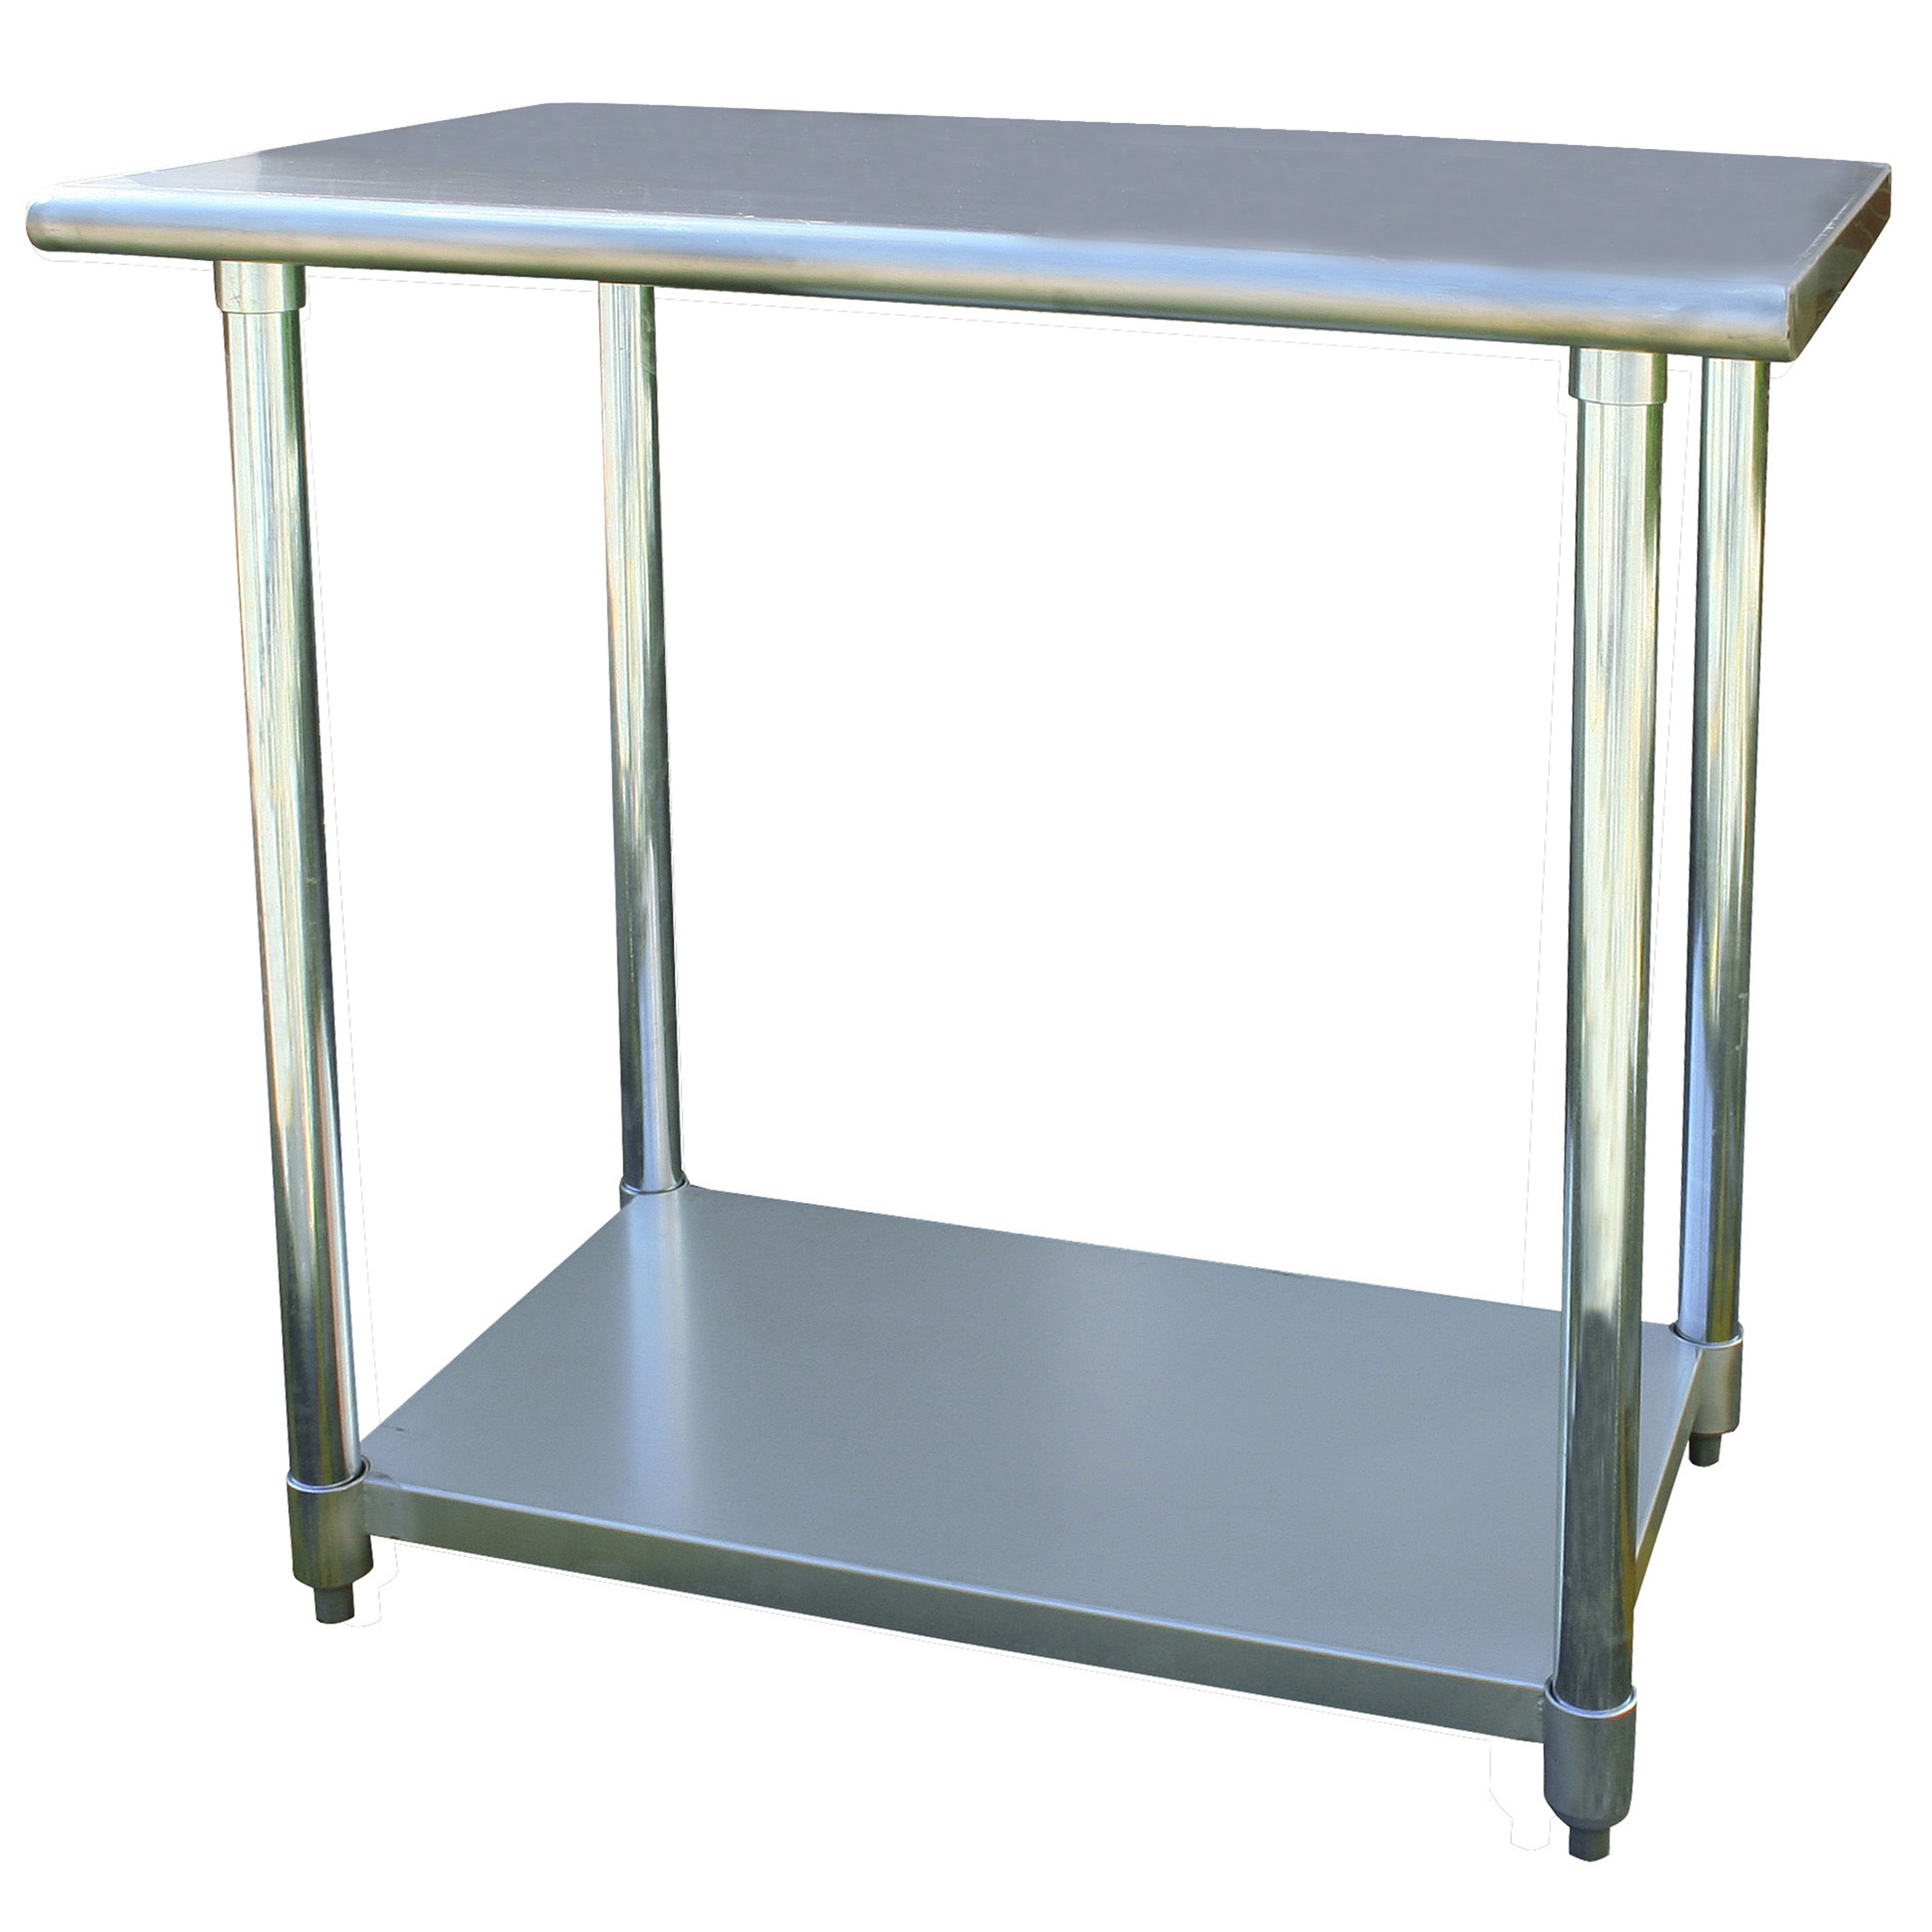 Buffalo Tools Sportsman Series Stainless Steel Top Workbench